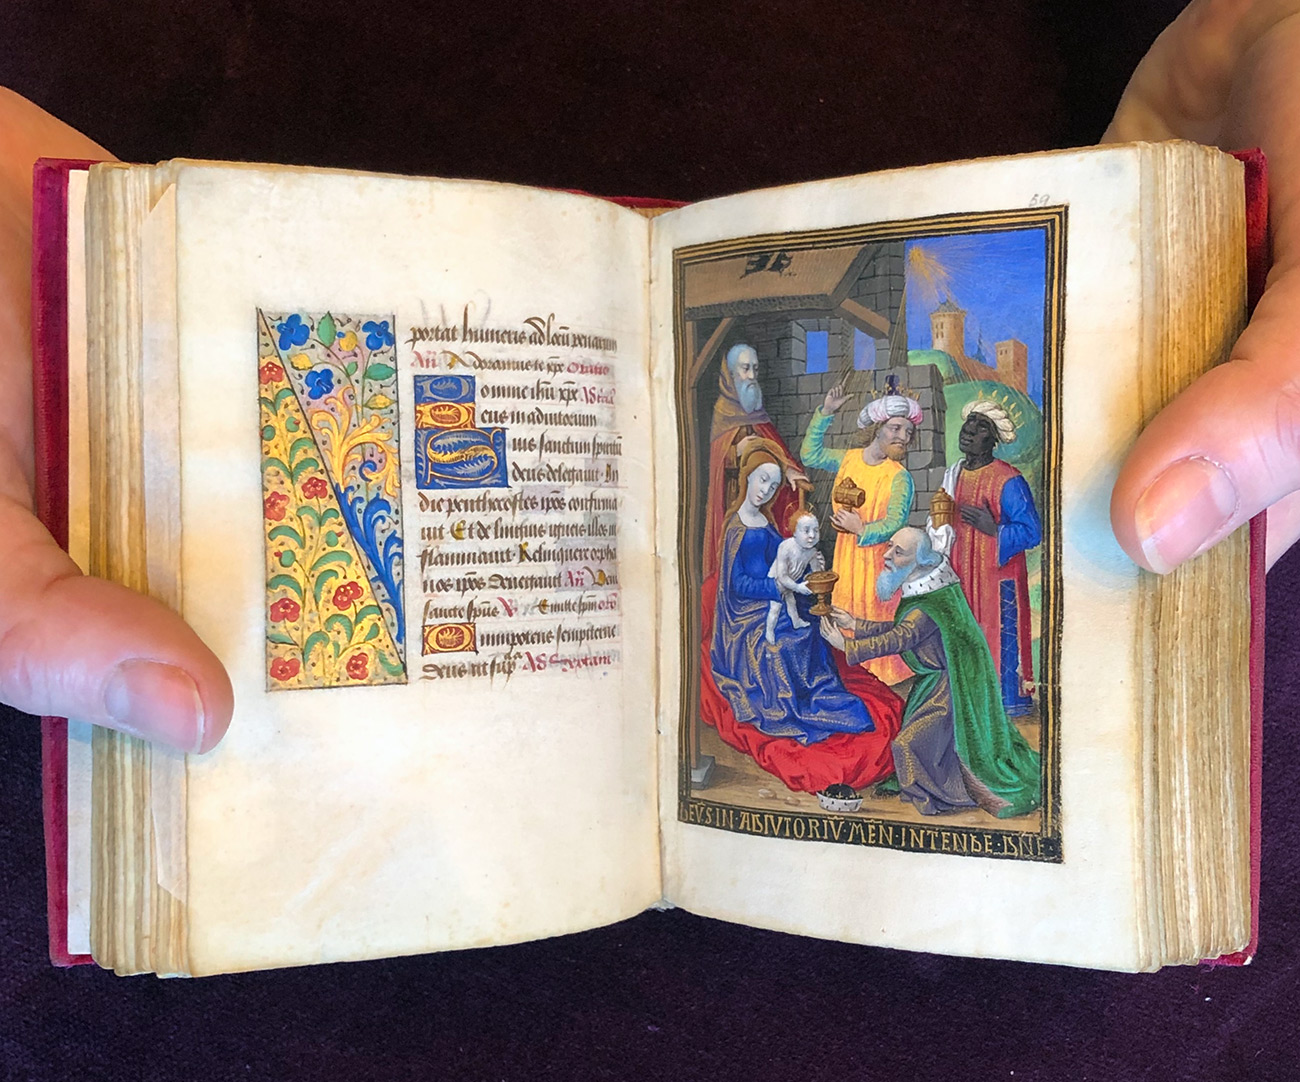 Close-up of two hands holding a tiny medieval manuscript open to a brightly painted page showing the adoration of the magi, one of whom has dark skin